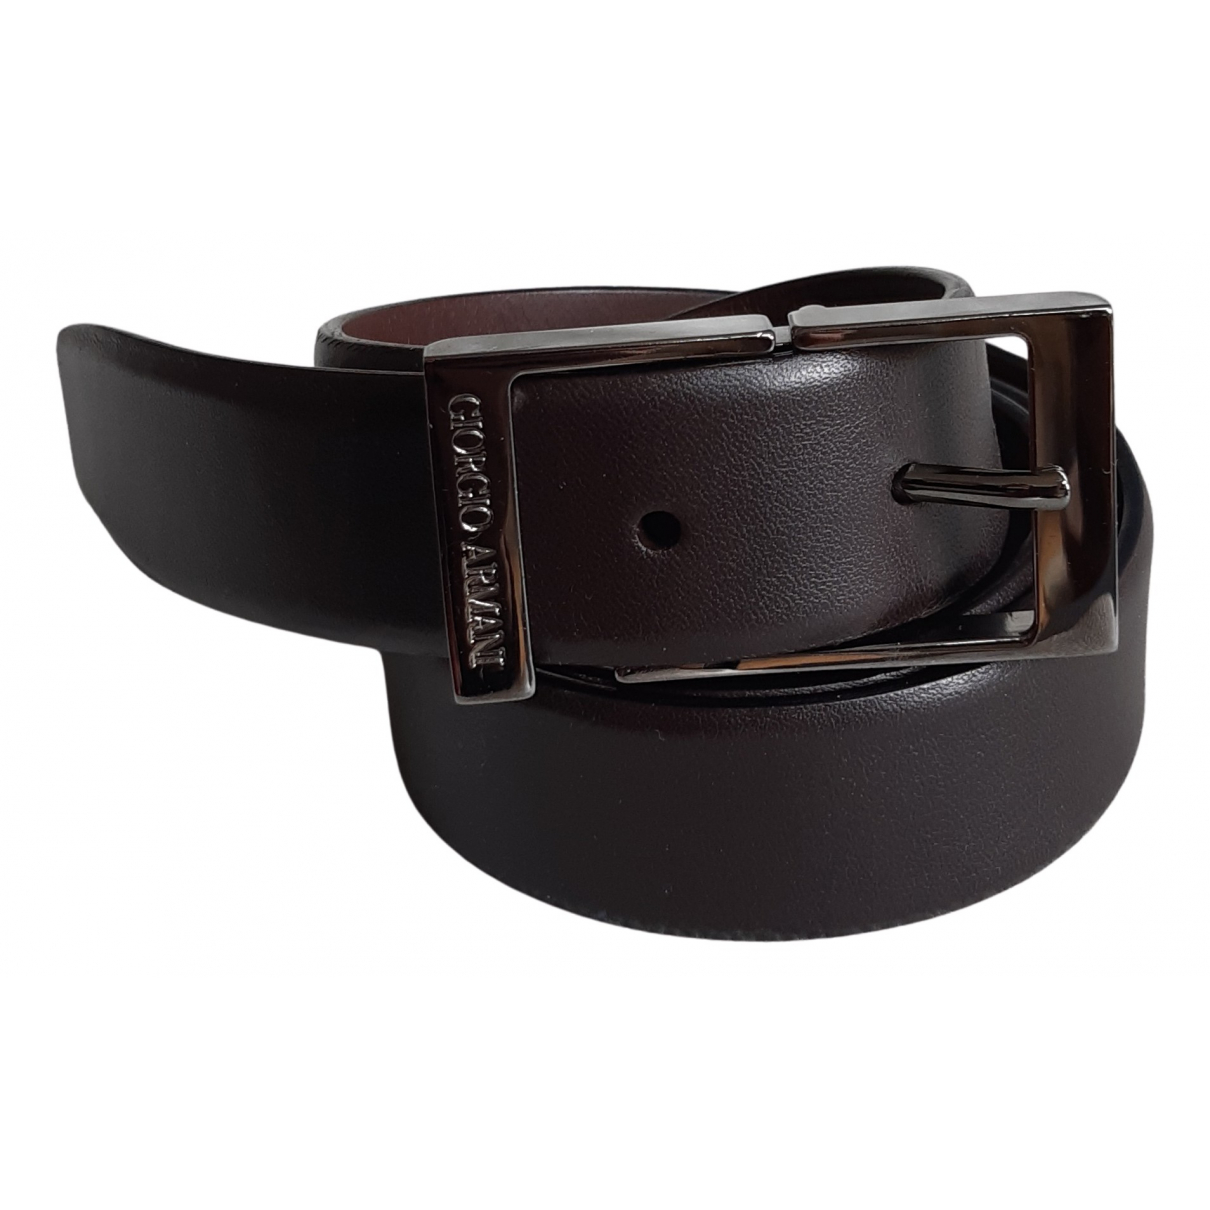 Giorgio Armani N Brown Leather belt for Men 95 cm